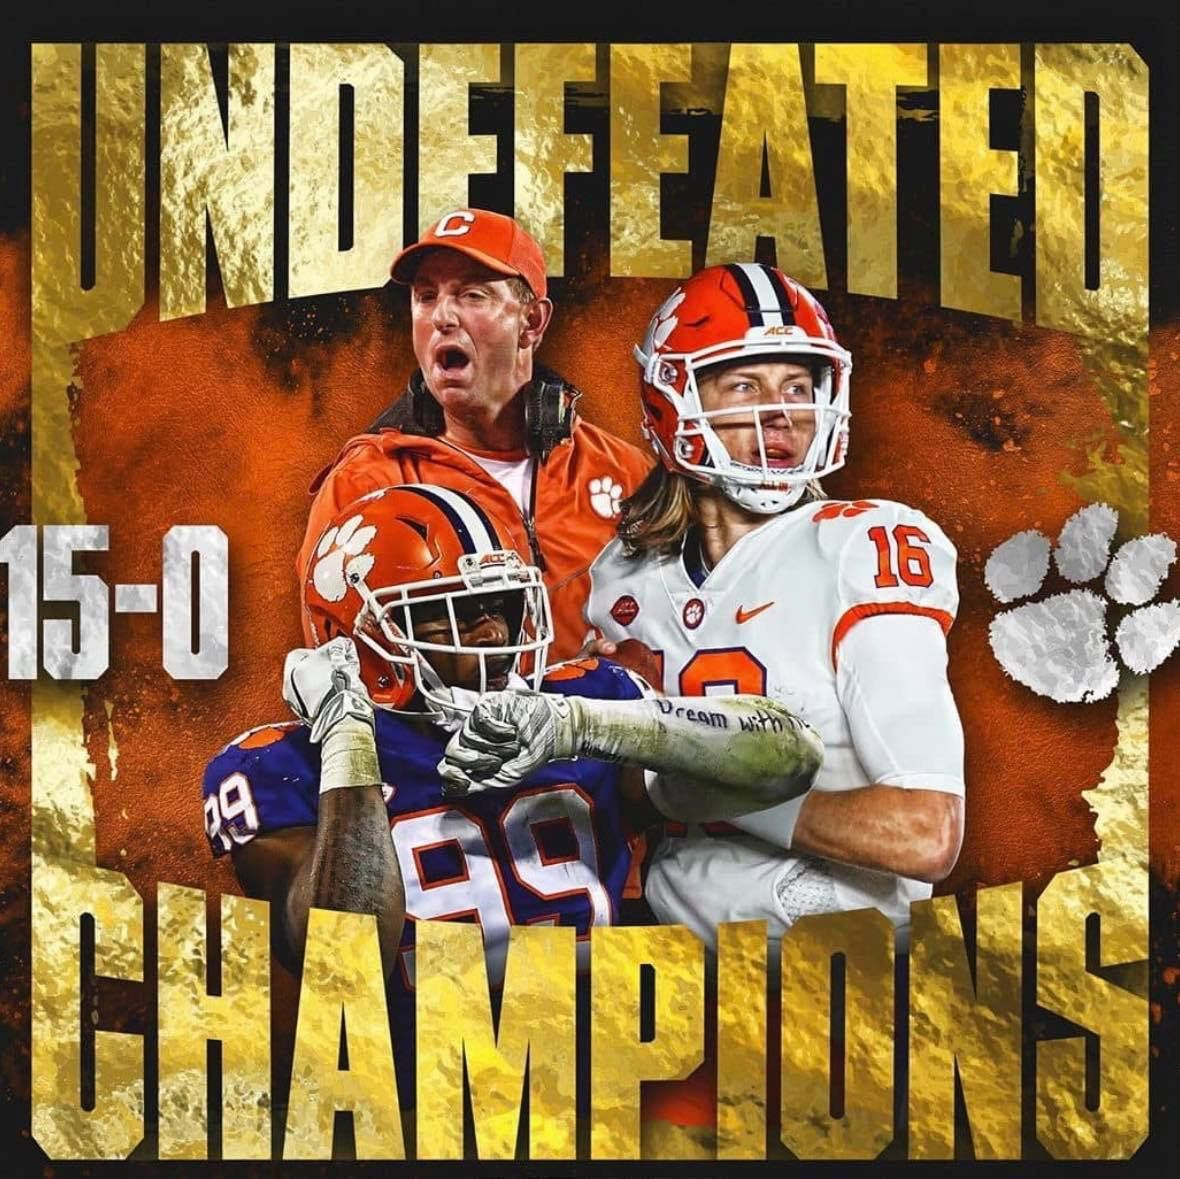 Pin By Kesty Bowers On Clemson Clemson Tigers Football Clemson Tigers Wallpaper Clemson